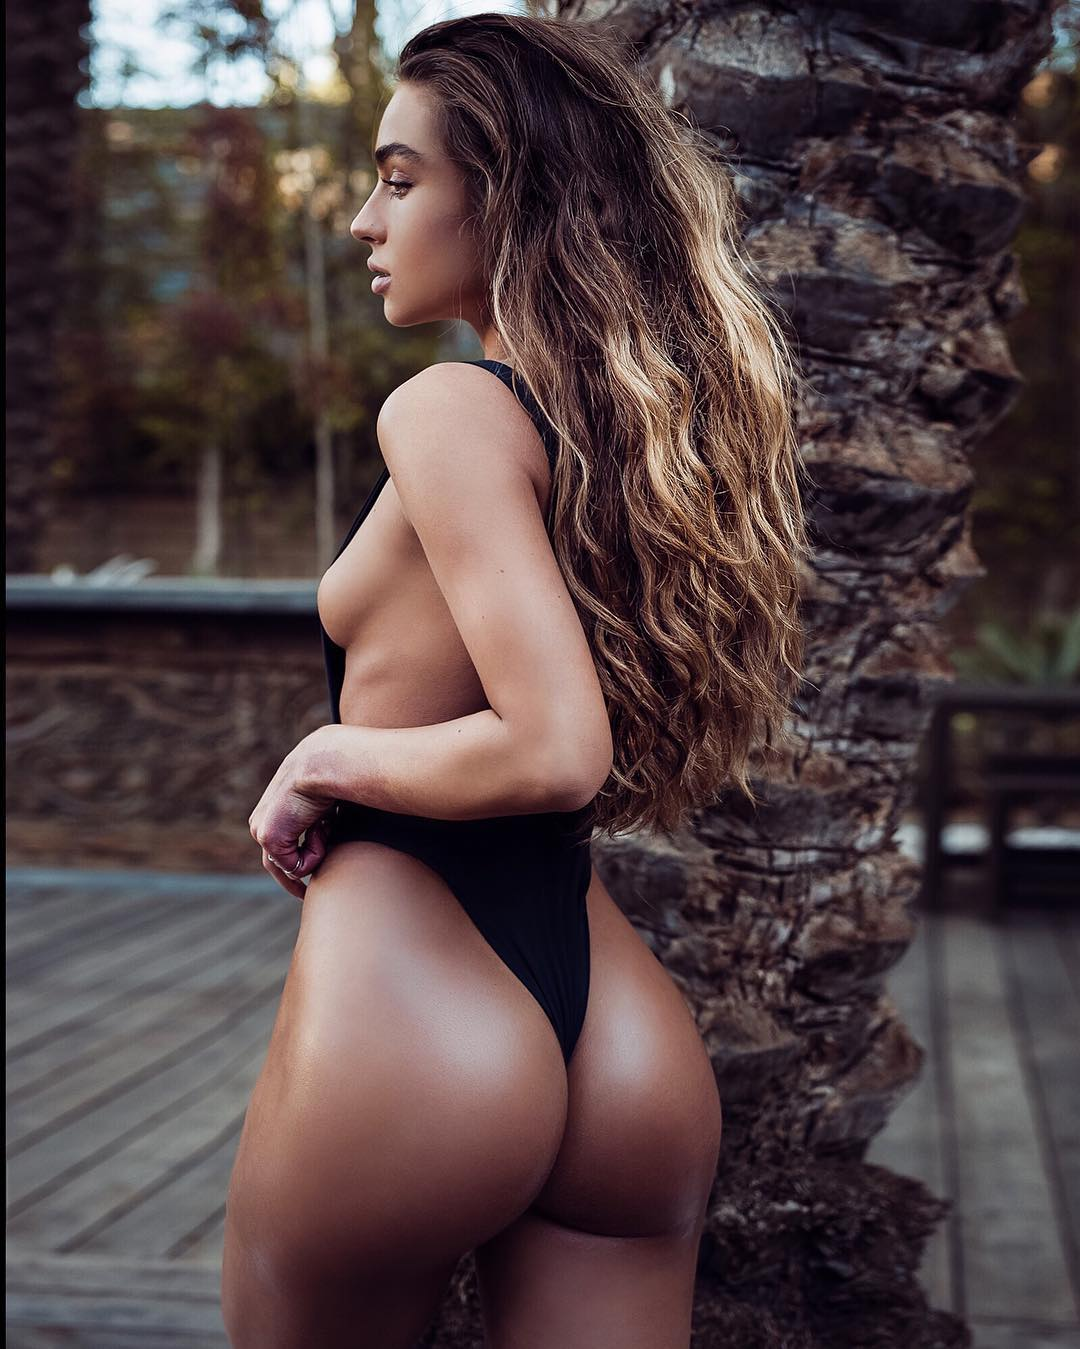 Ray nackt Sommer  Sommer Ray